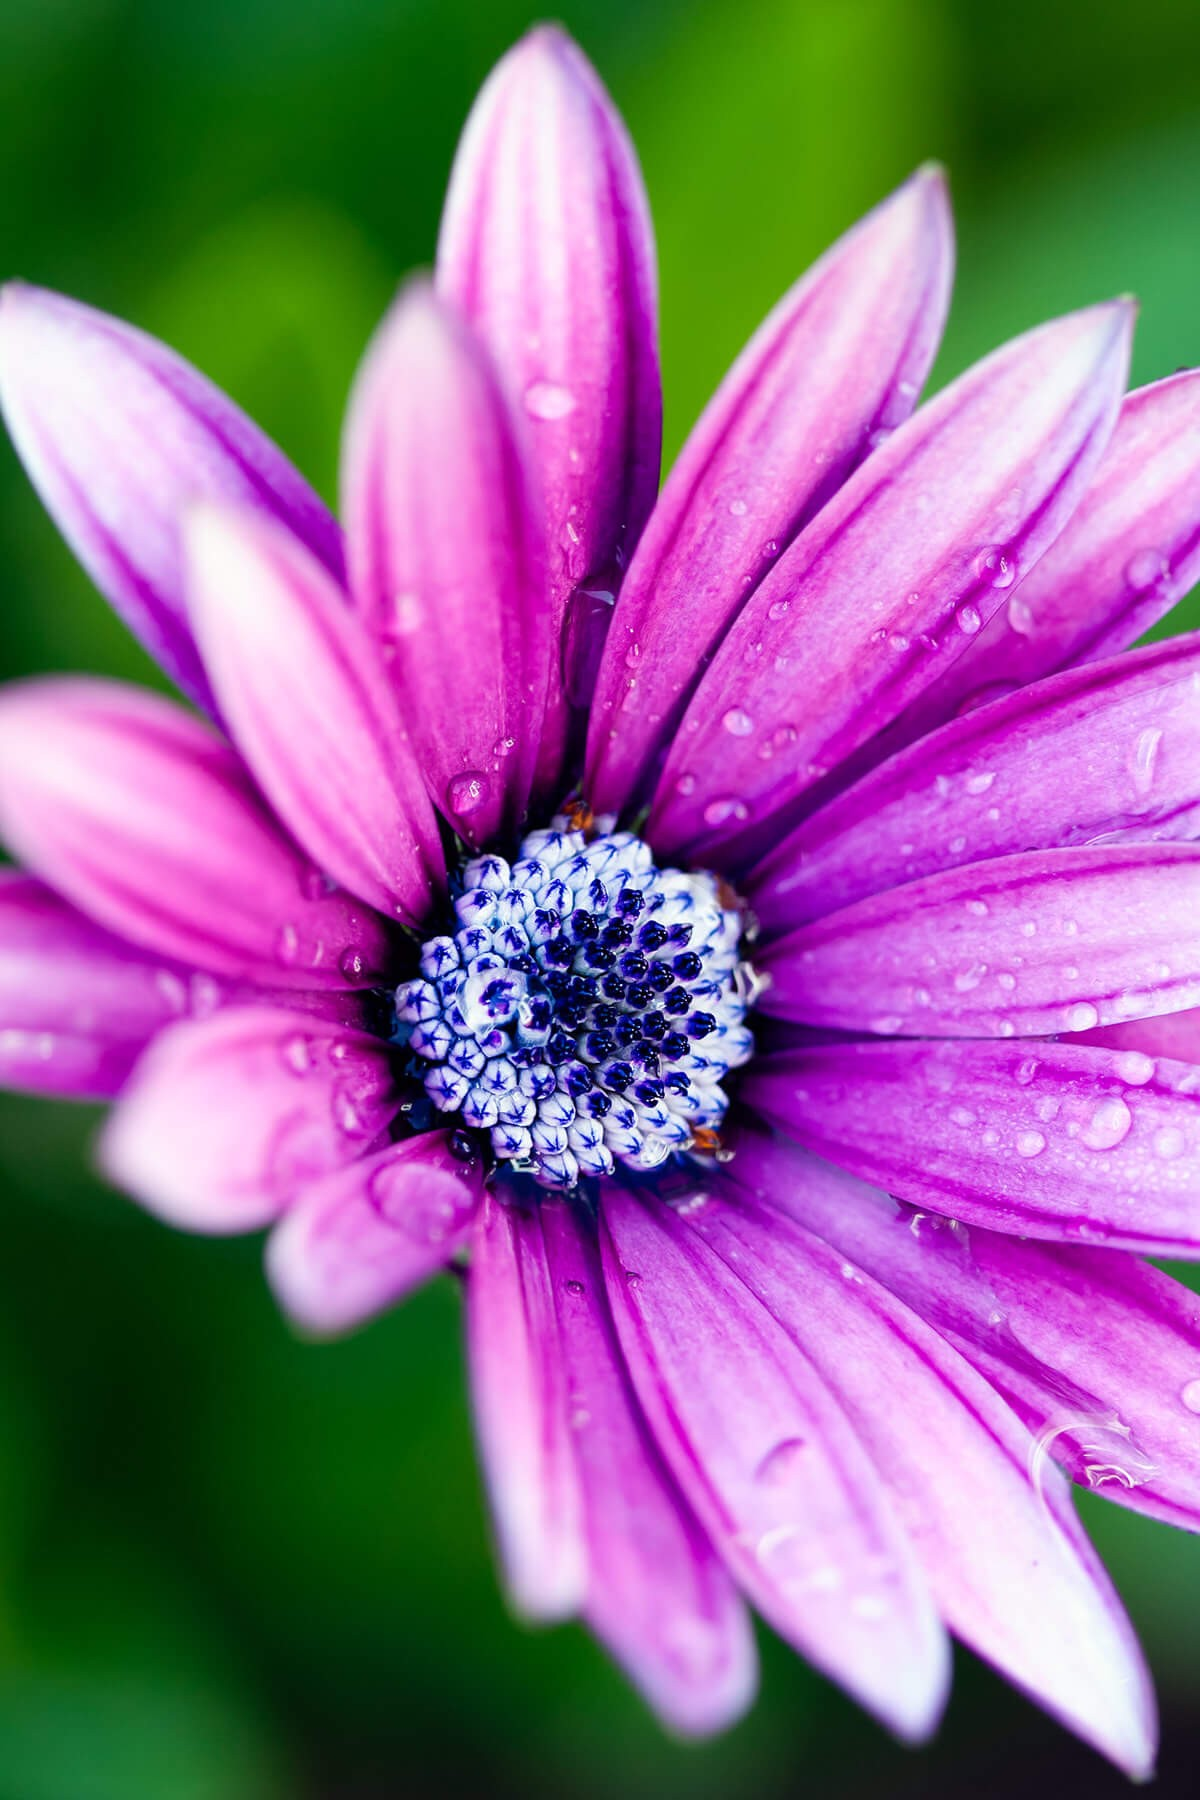 Purple Daisy HD wallpaper for Kindle Fire HDX   HDwallpapersnet 1200x1800